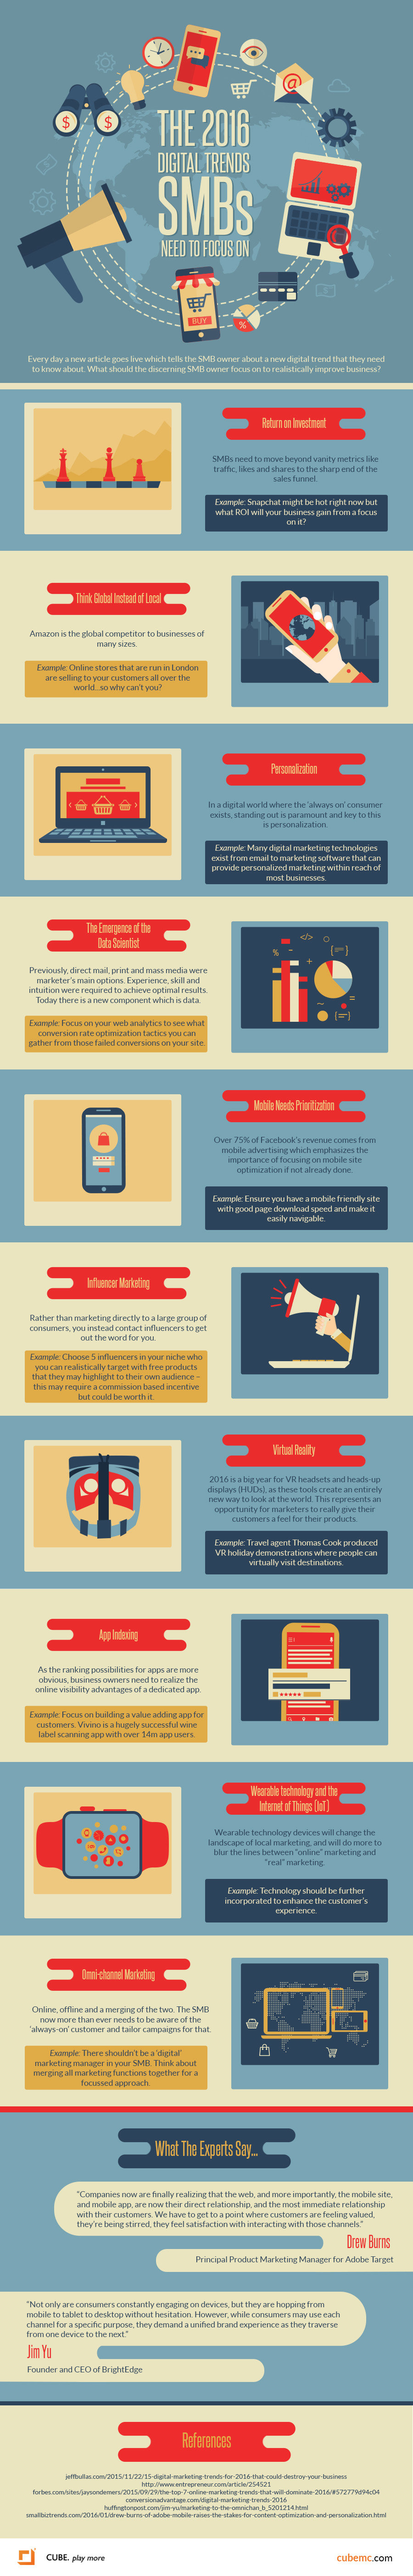 digital-trends-smbs-need-to-know-infographic